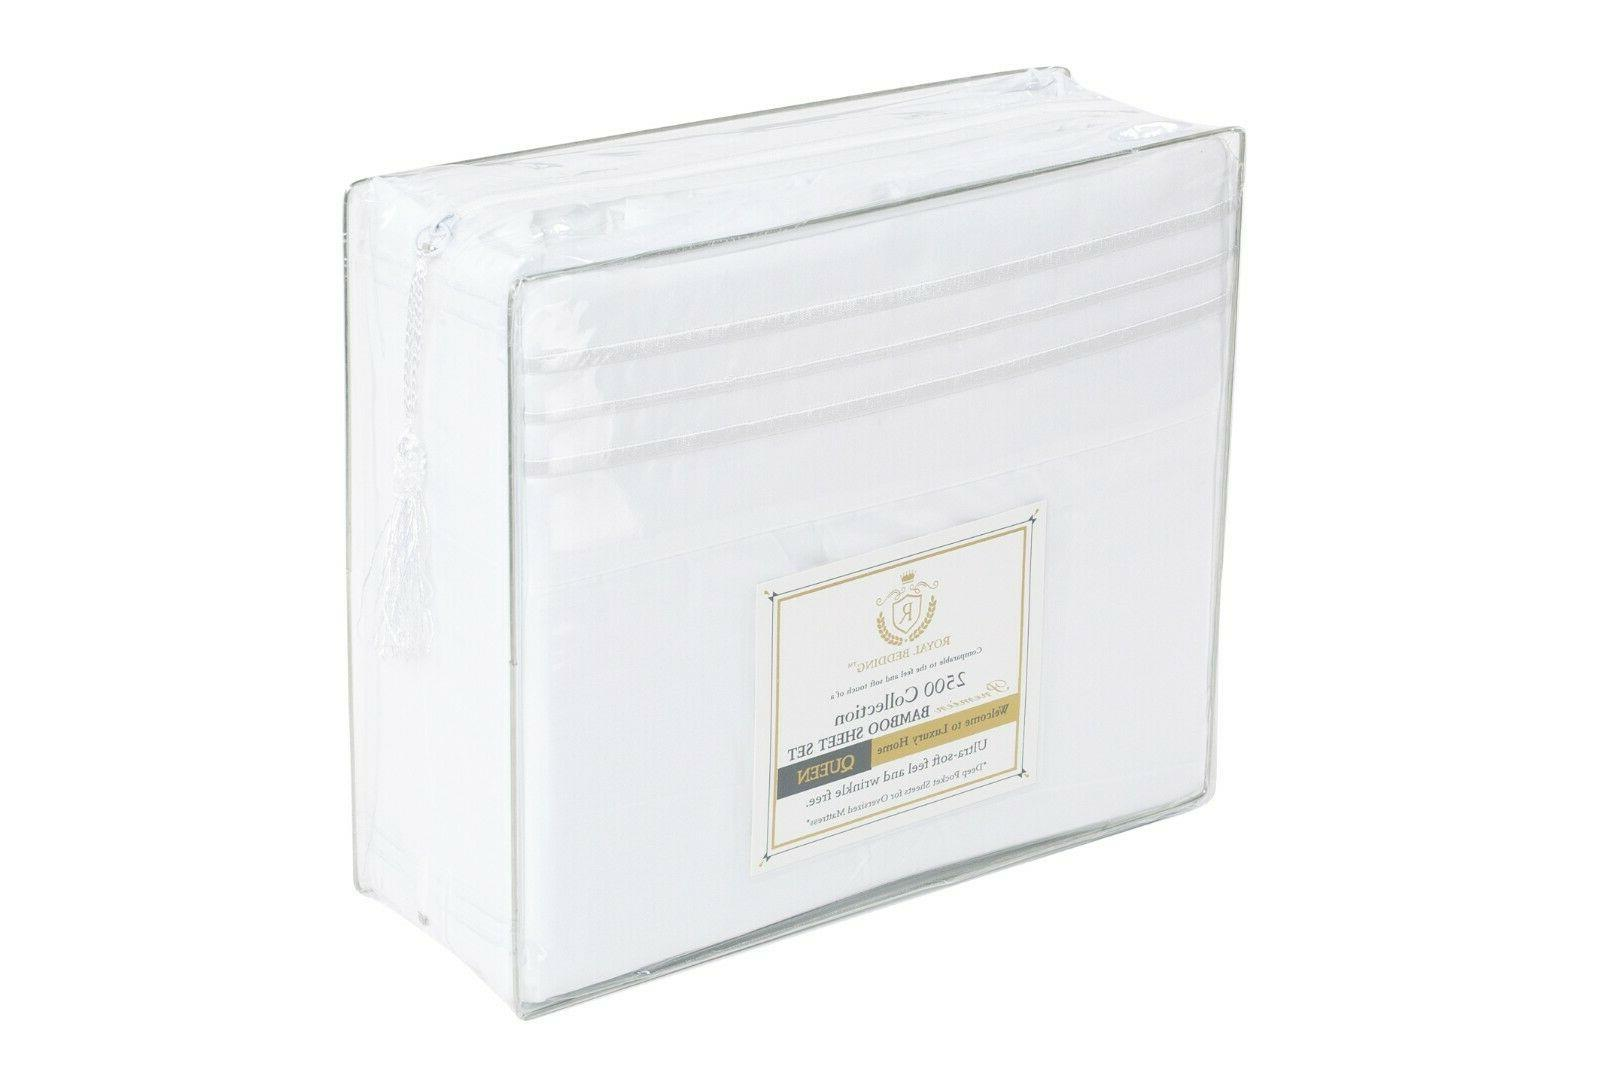 ROYAL BEDDING BAMBOO COLLECTION- SAVE 15% WHEN YOU BUY 2 LIMITED